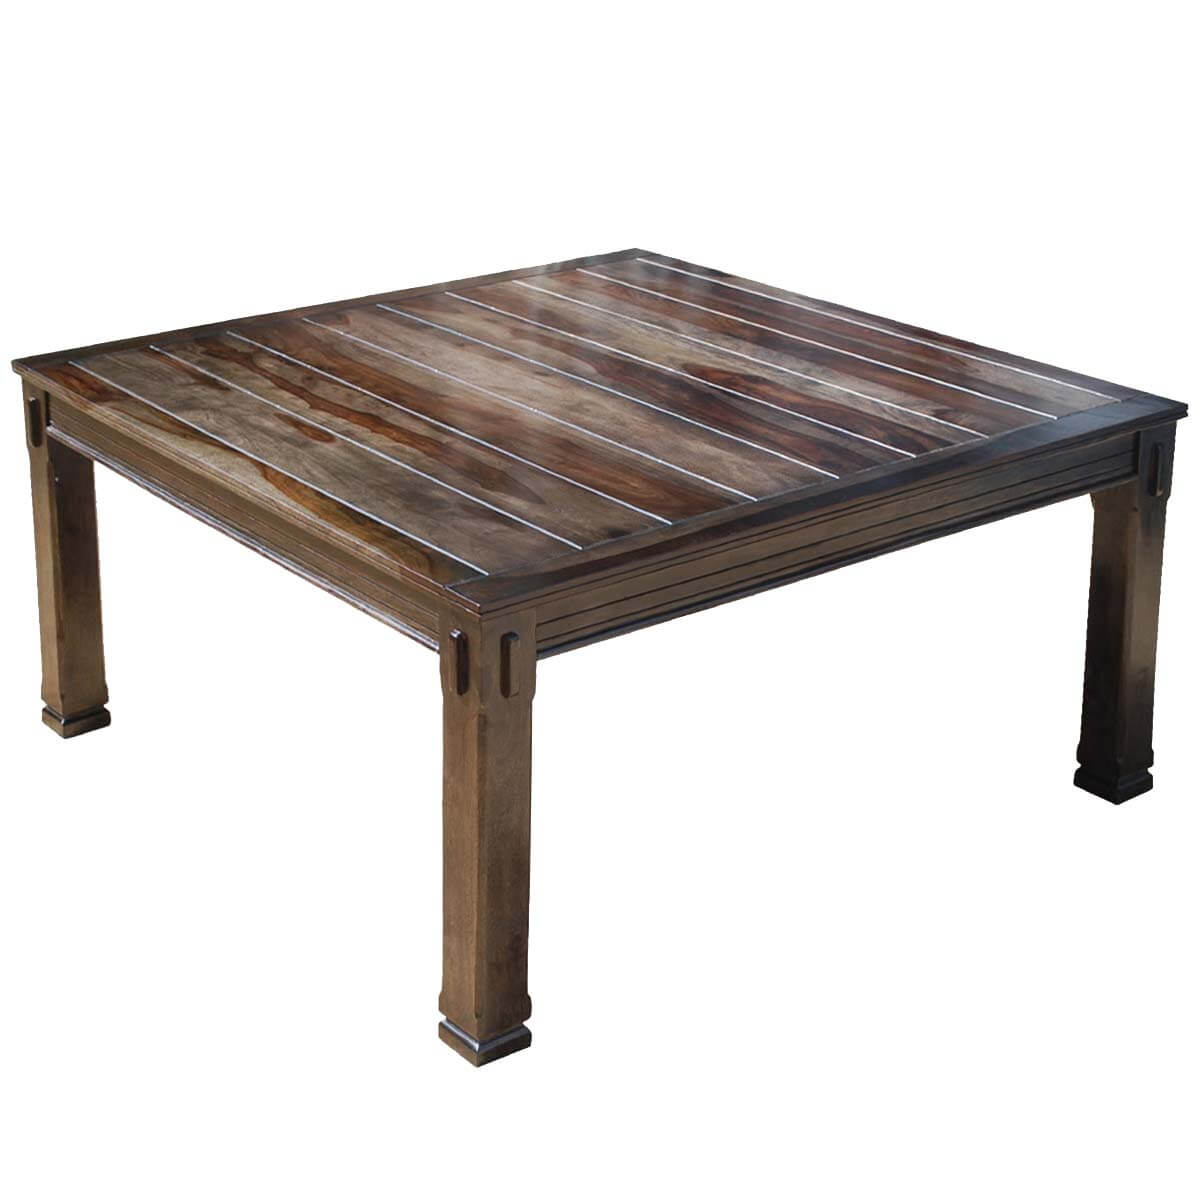 Santa fe transitional rustic solid wood square dining table - India dining table ...